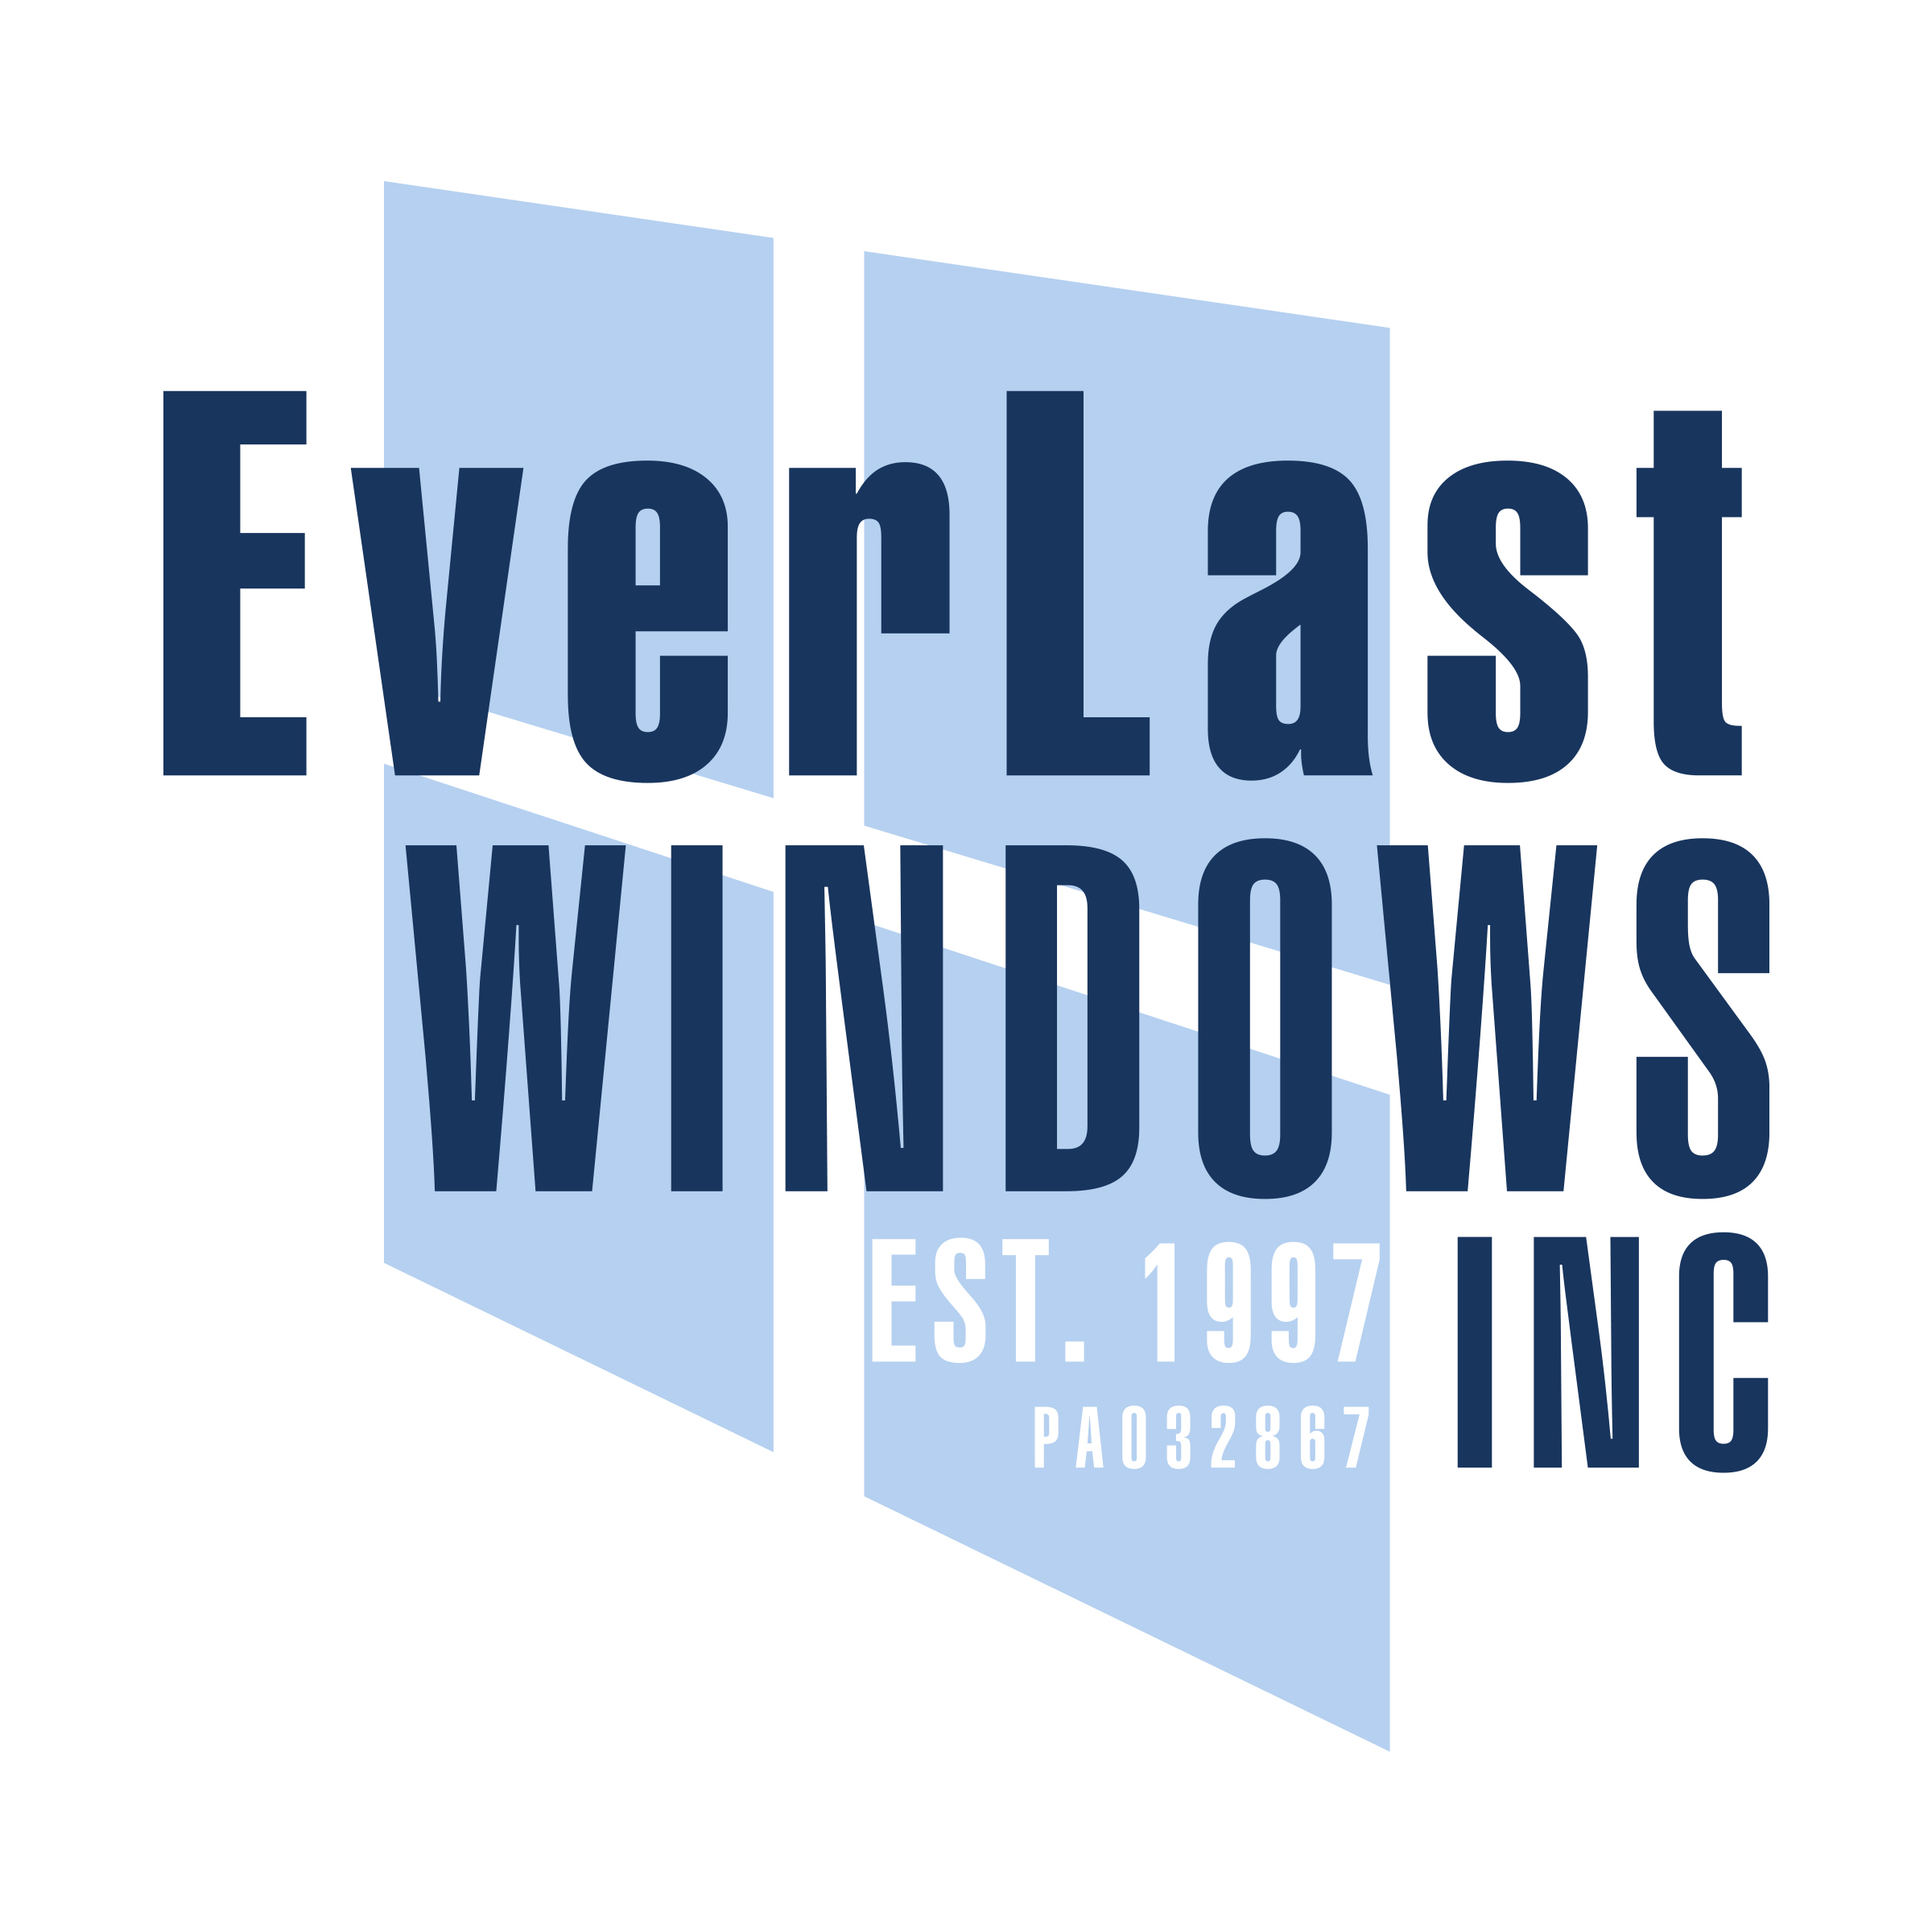 Everlast Windows Comp 2